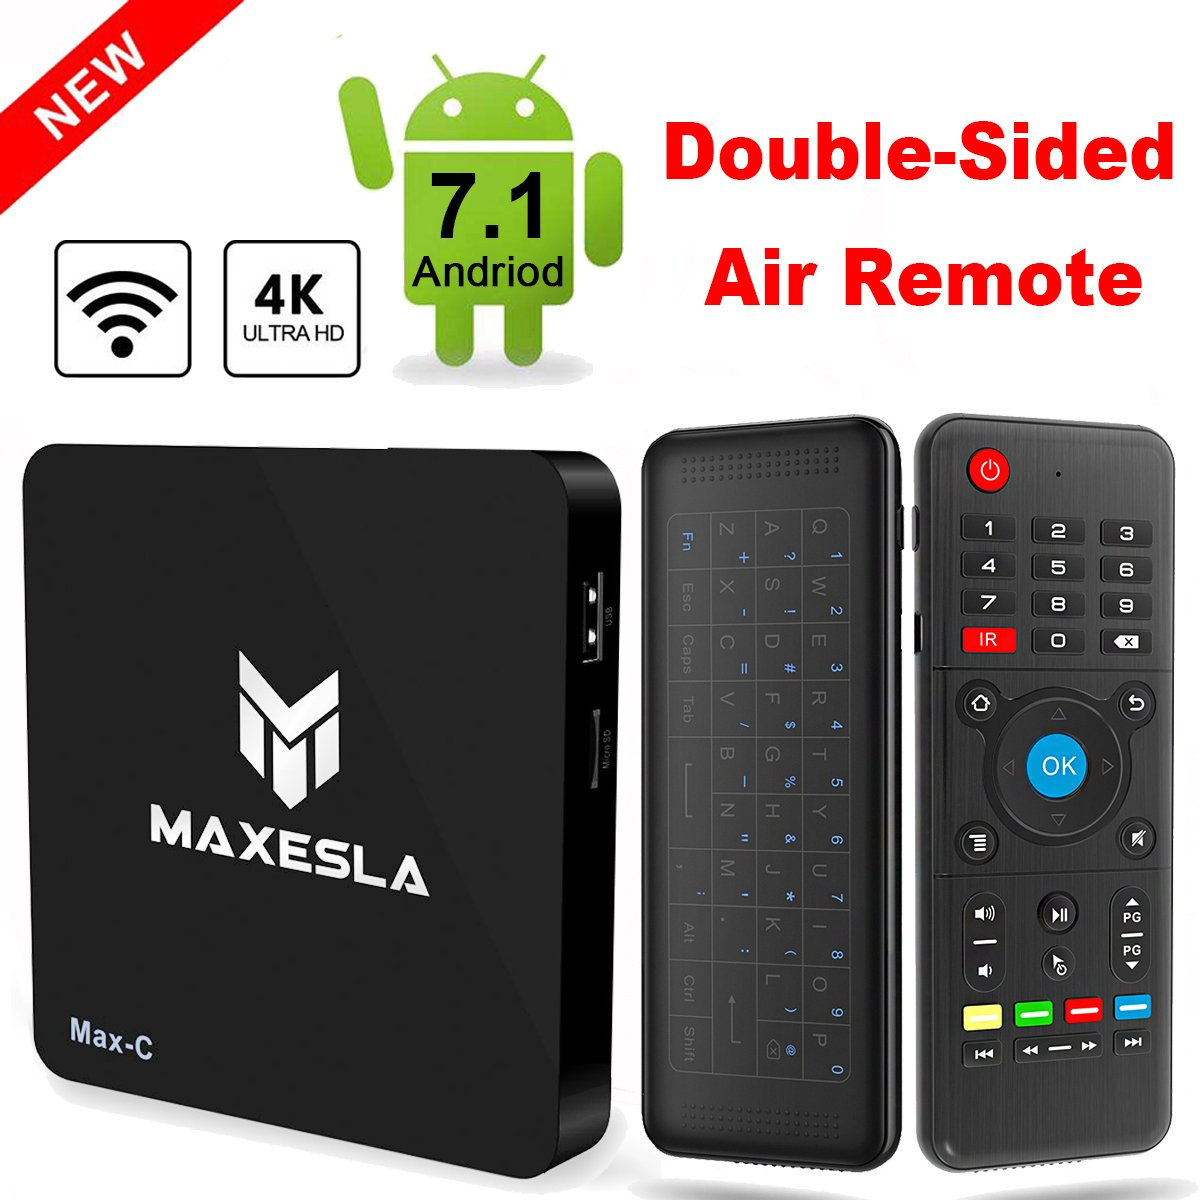 Android TV BOX - Maxesla Max-C Android 7.1 Smart TV Box with Upgrade Amlogic S905W Quad Core, 1G RAM + 8G ROM, 4K UHD H.265 Video Decoder, Wifi Internet Media Player + Air Remote Control with Keyboard